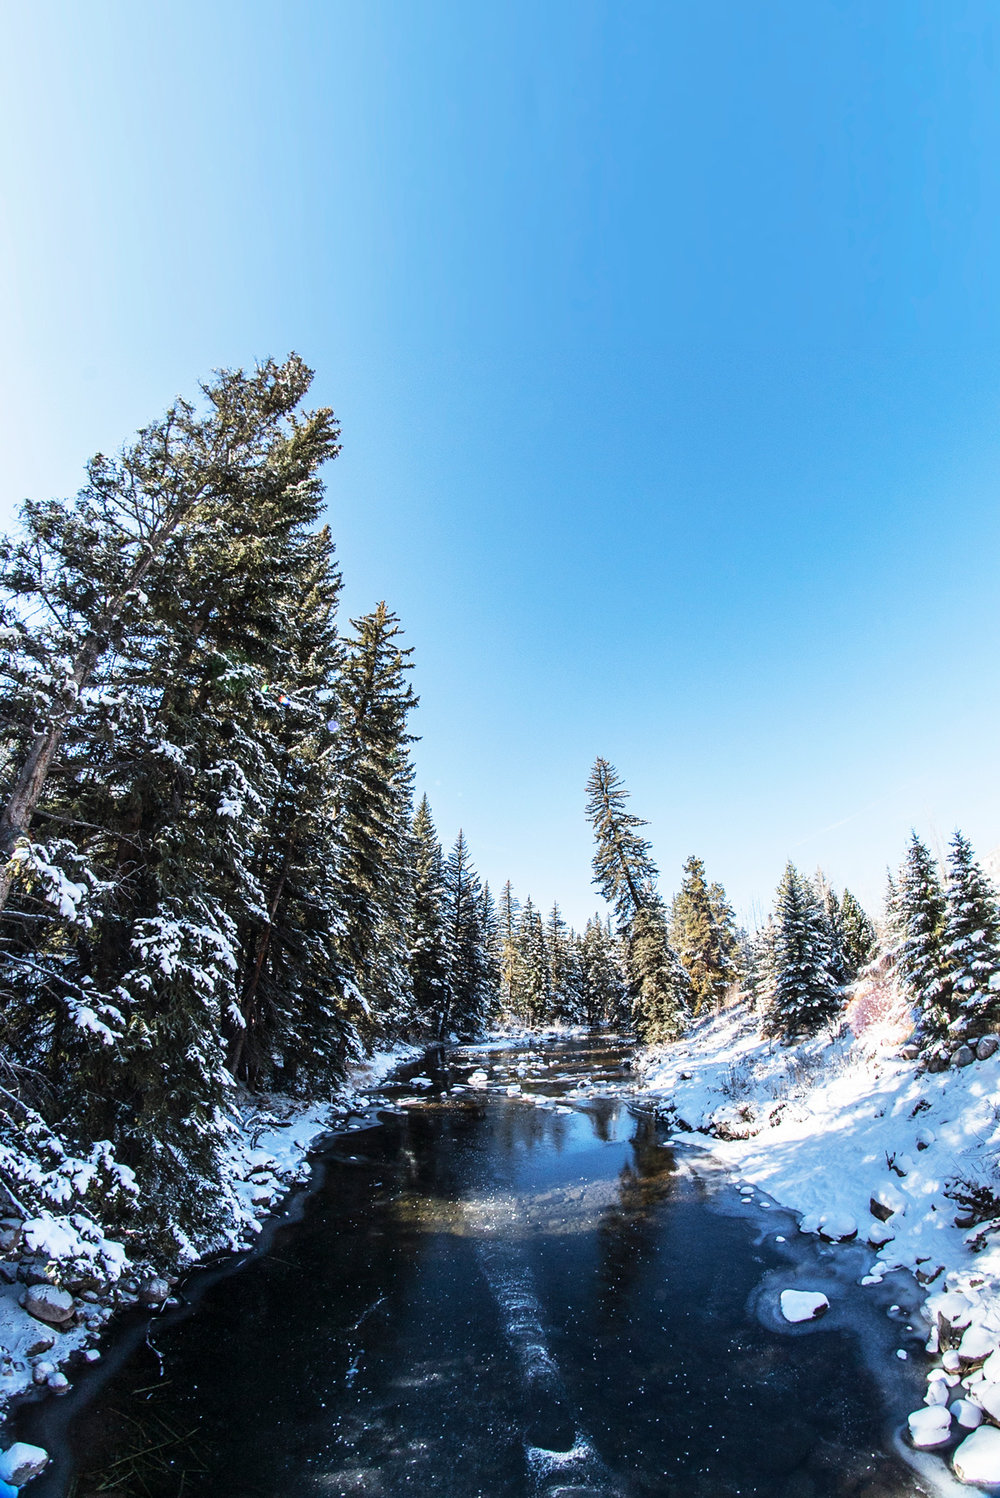 arching_colorado_river_trees_vail_pines_nature.jpg